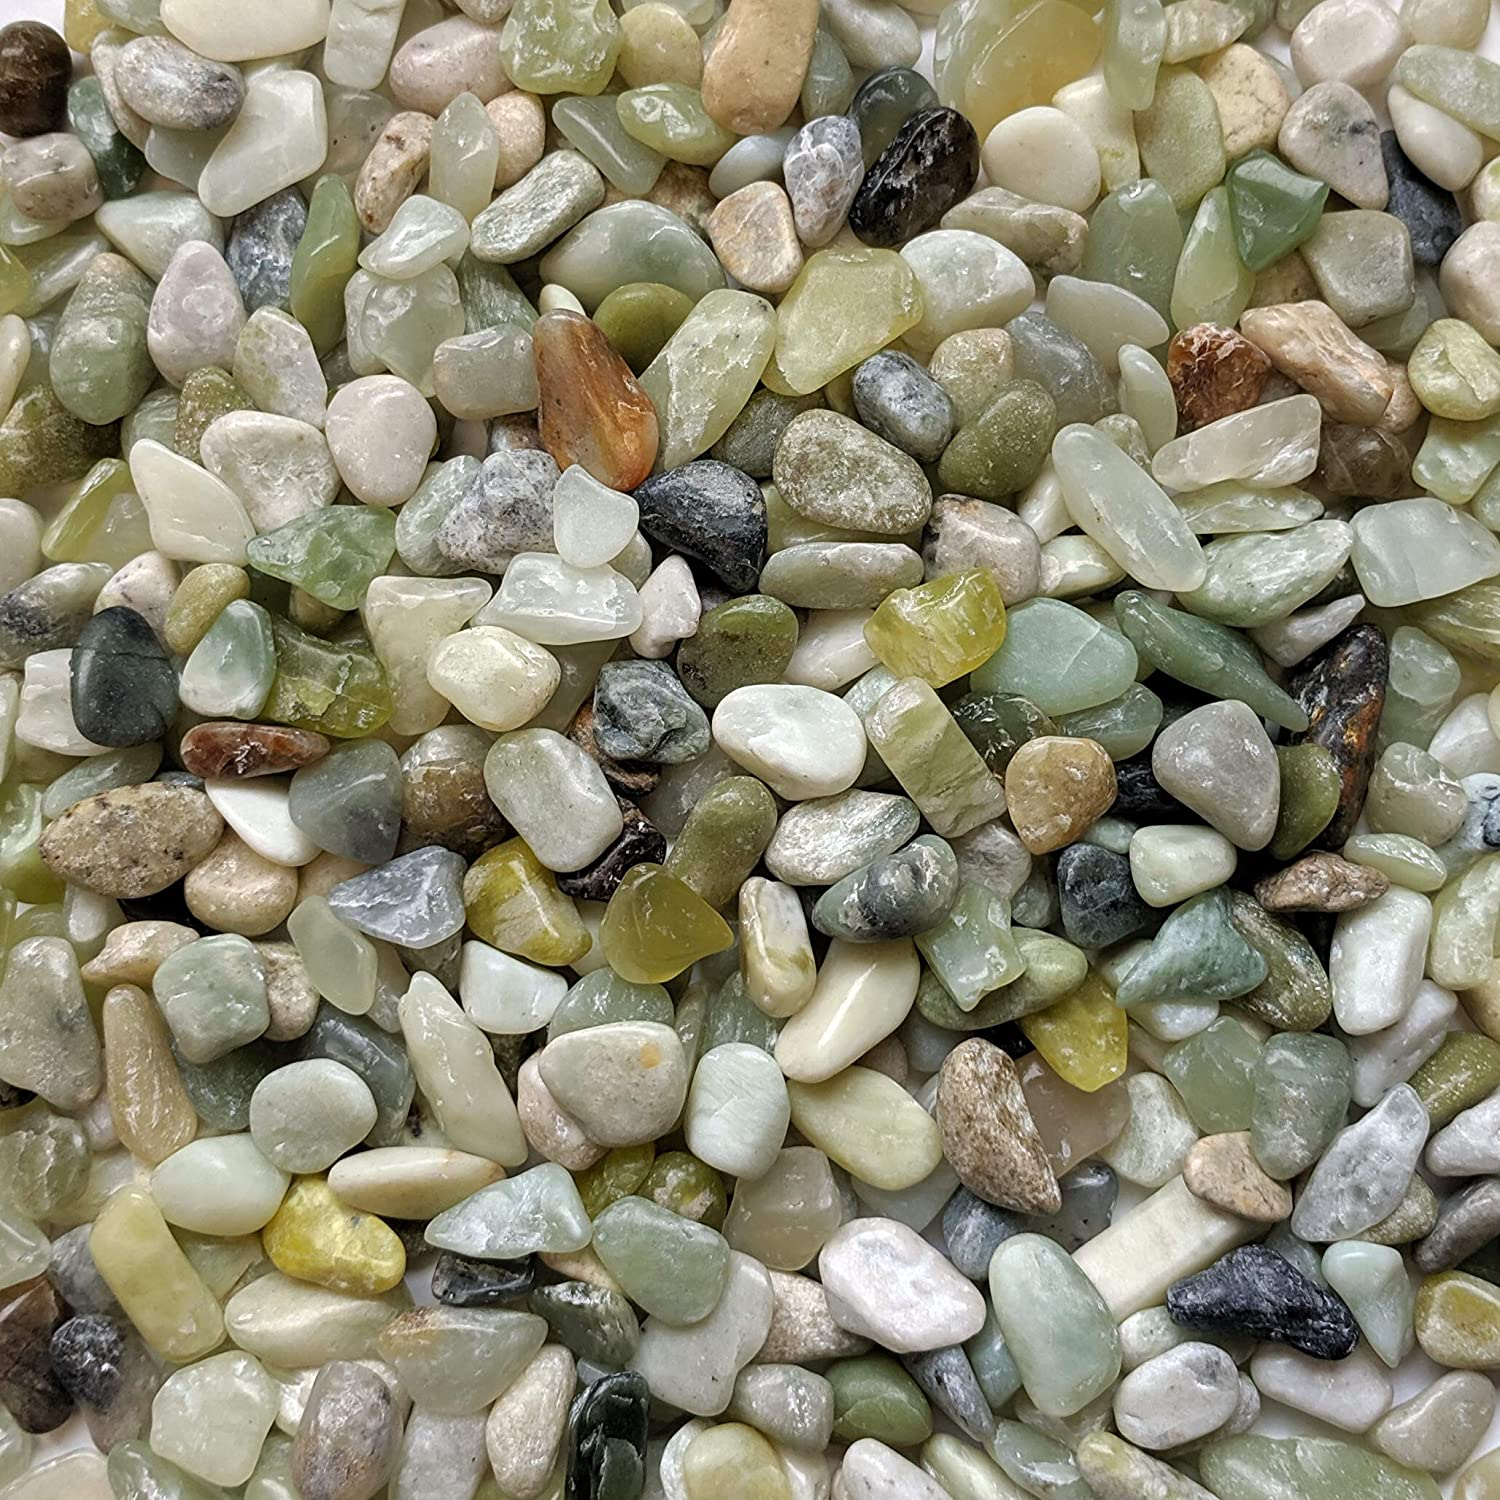 Midwest Hearth Natural Decorative Department store Polished 3 Popular brand Pebbles Gra Jade 8